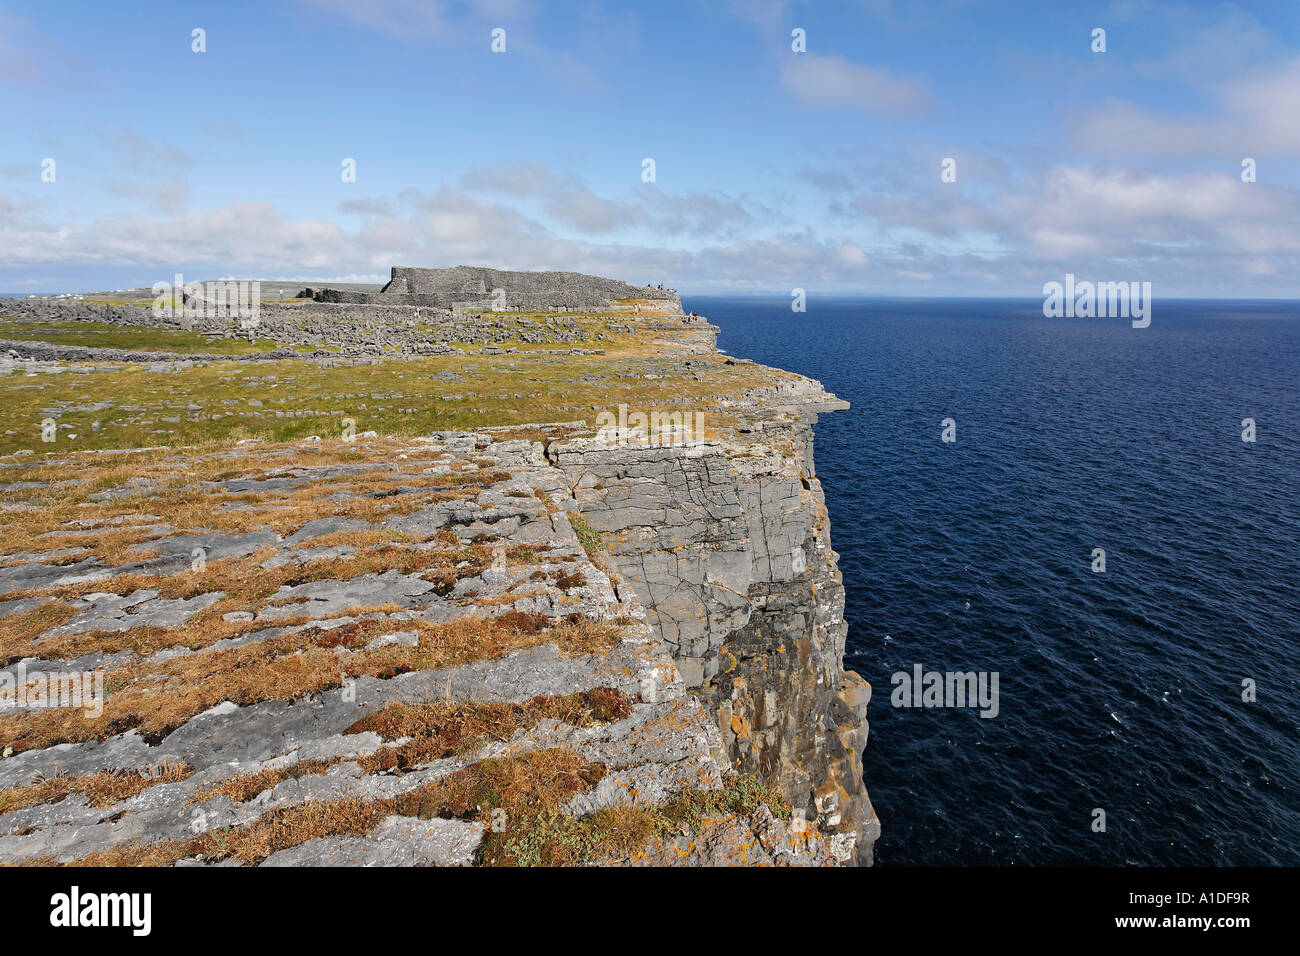 Cliffs and Dun Aengus Fort, Inis Mor, Aran Islands, Ireland - Stock Image